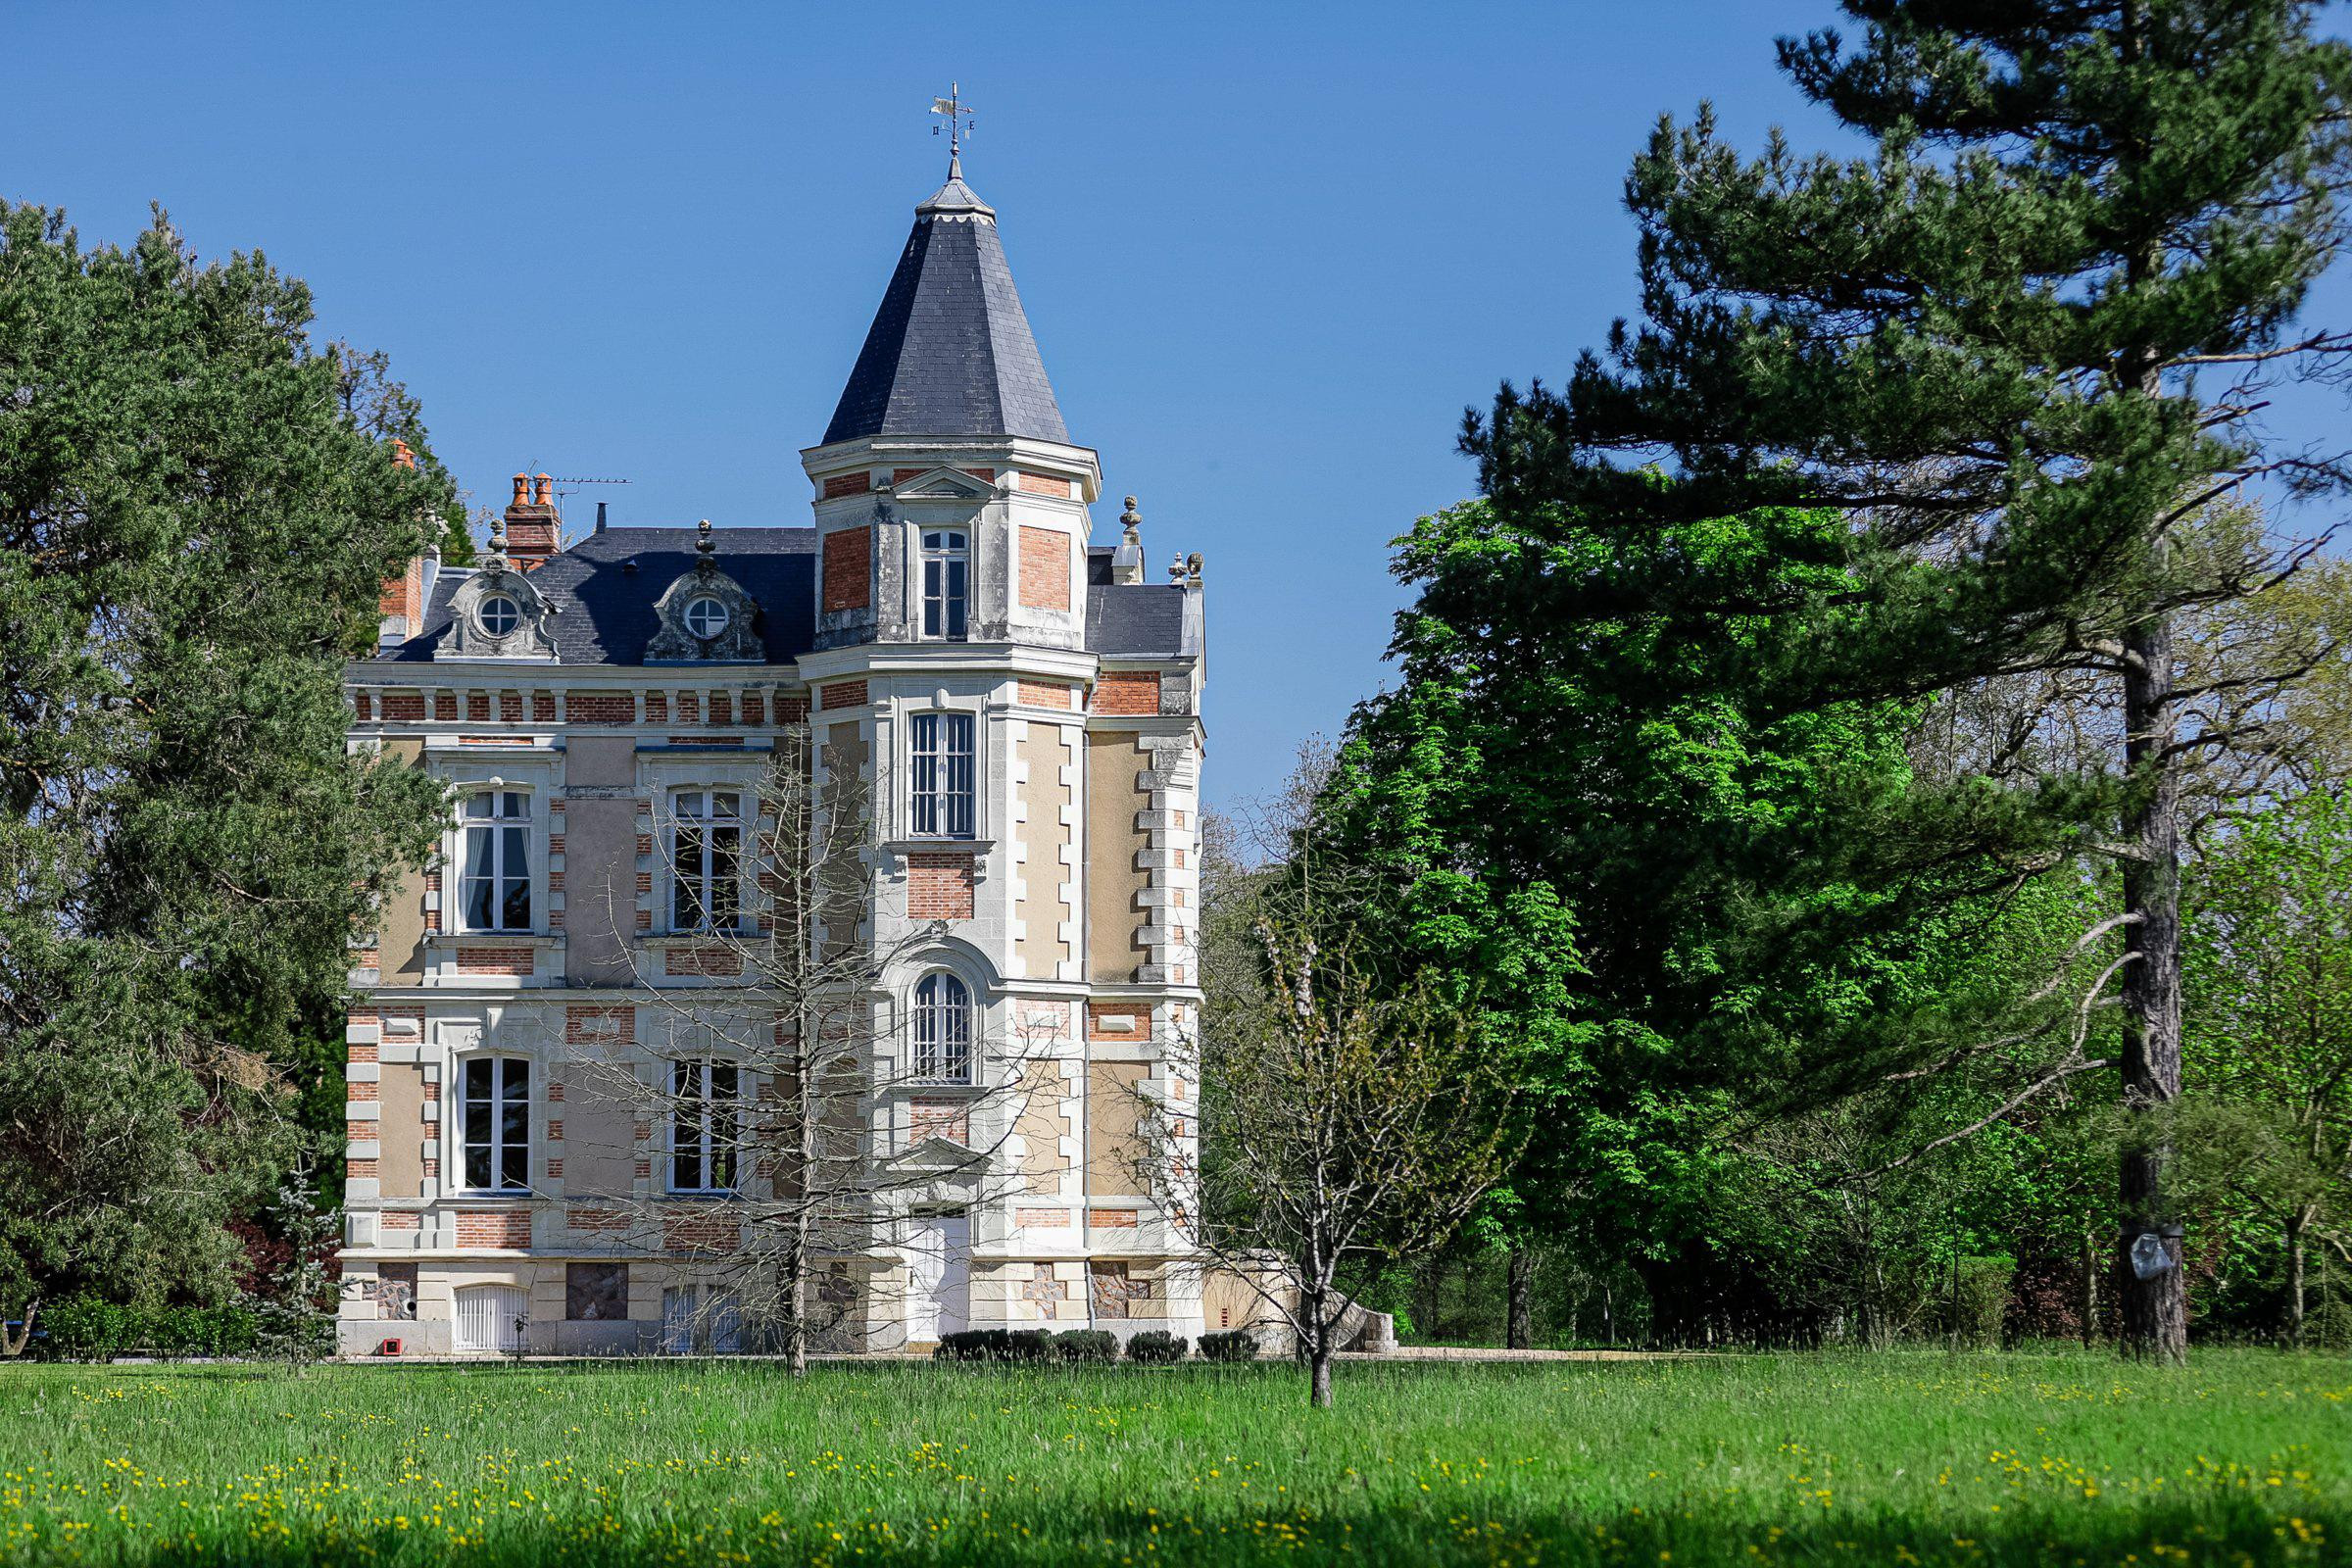 Buying A French Chateau Can Cost Less Than A Los Angeles Teardown